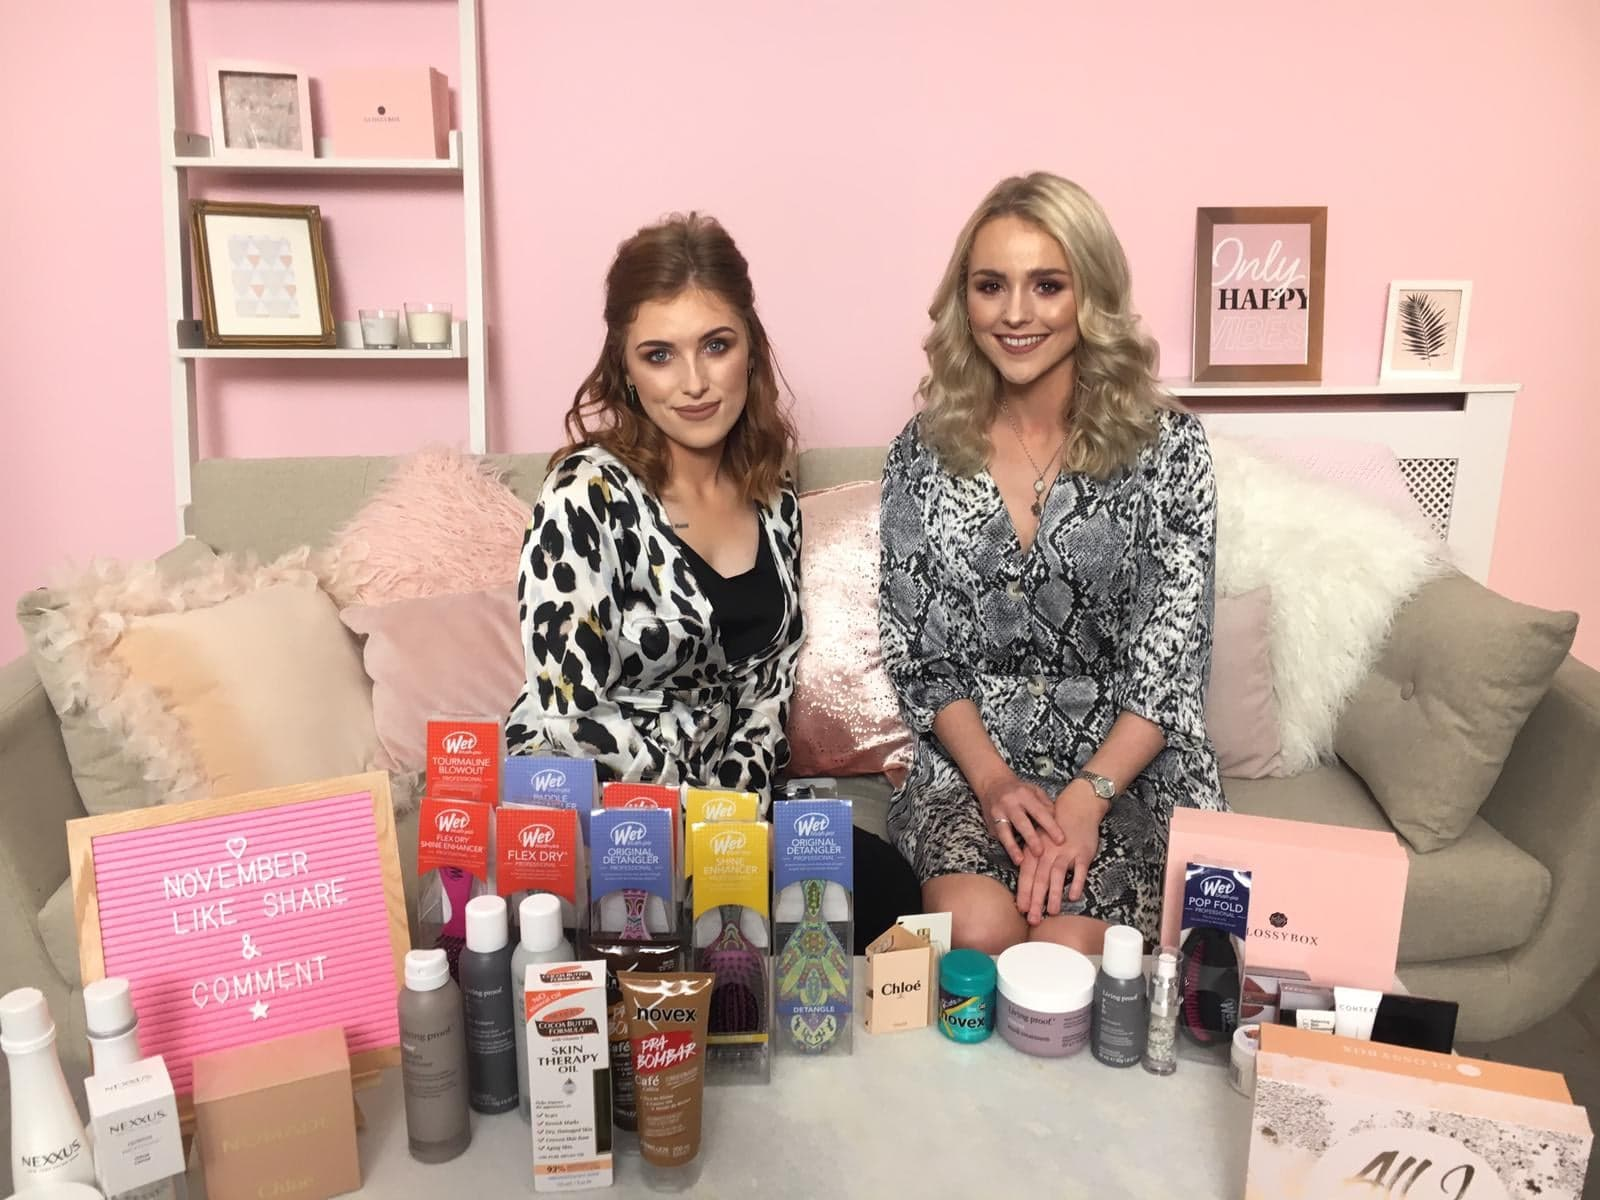 GLOSSYBOX Facebook Live: Your November Questions Answered